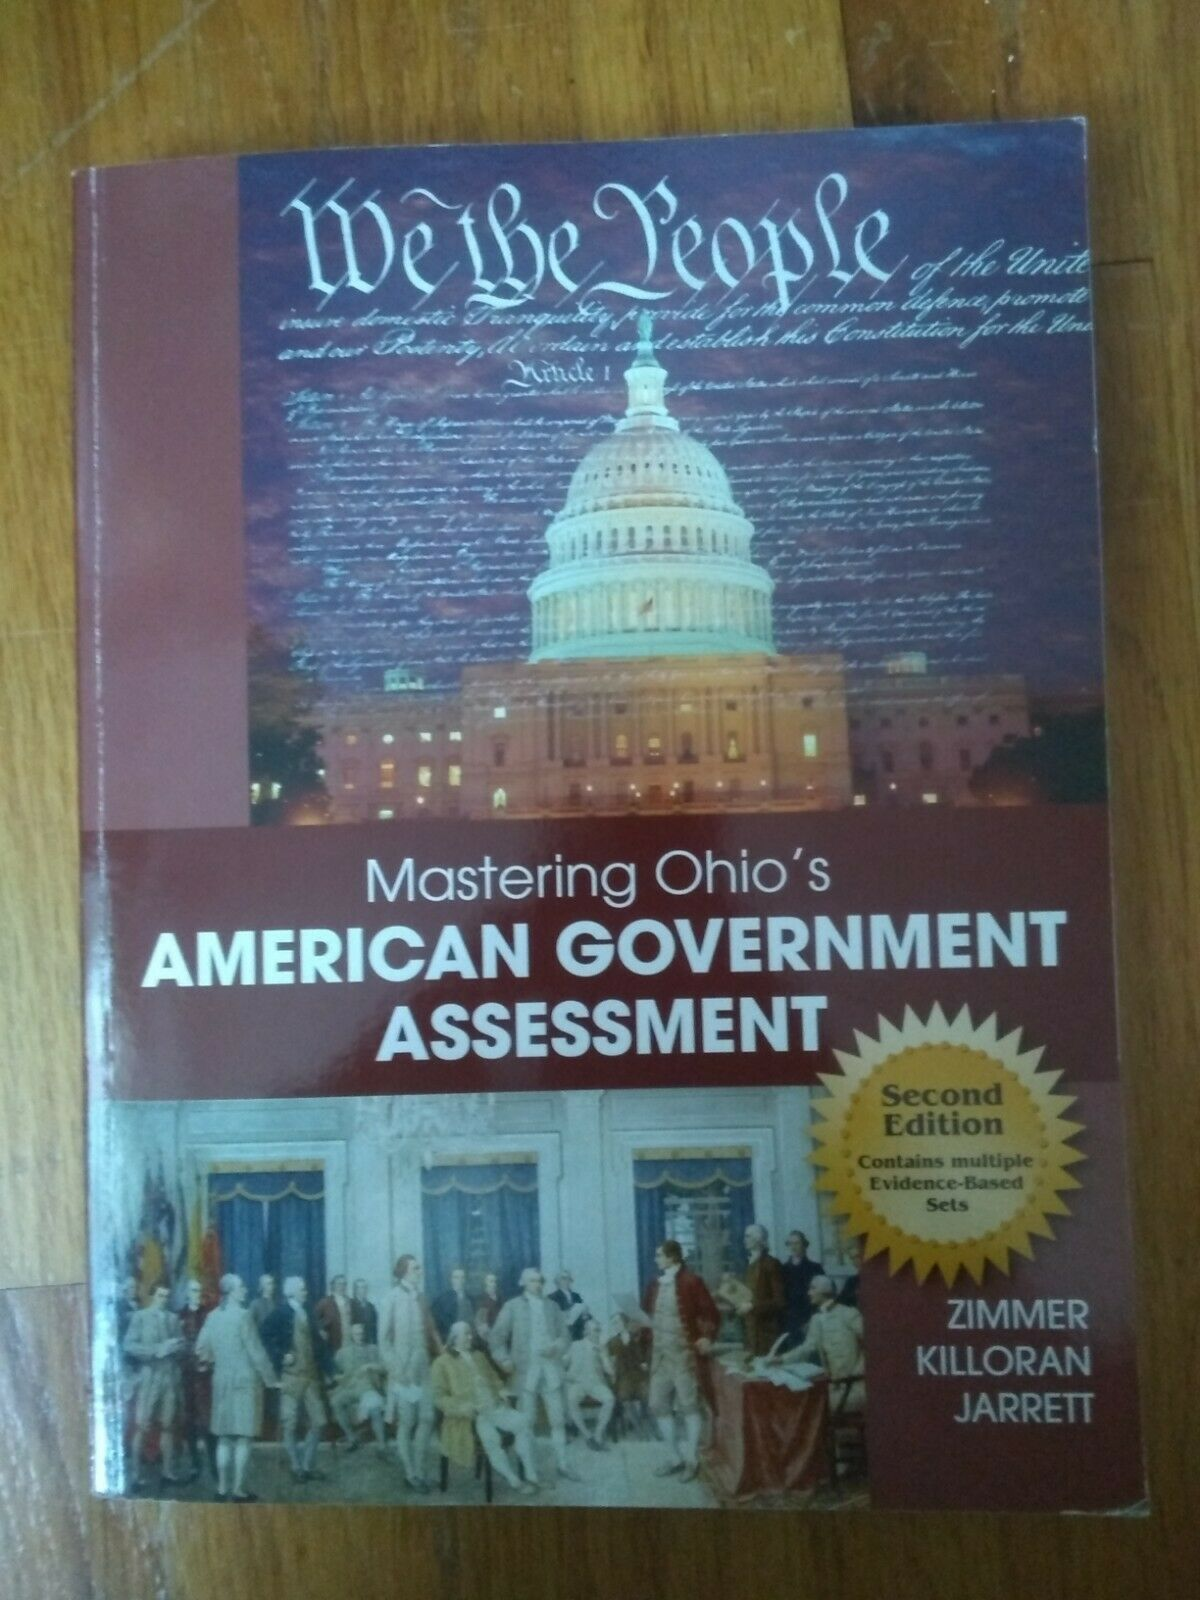 mastering ohio's american government assessment eBay in